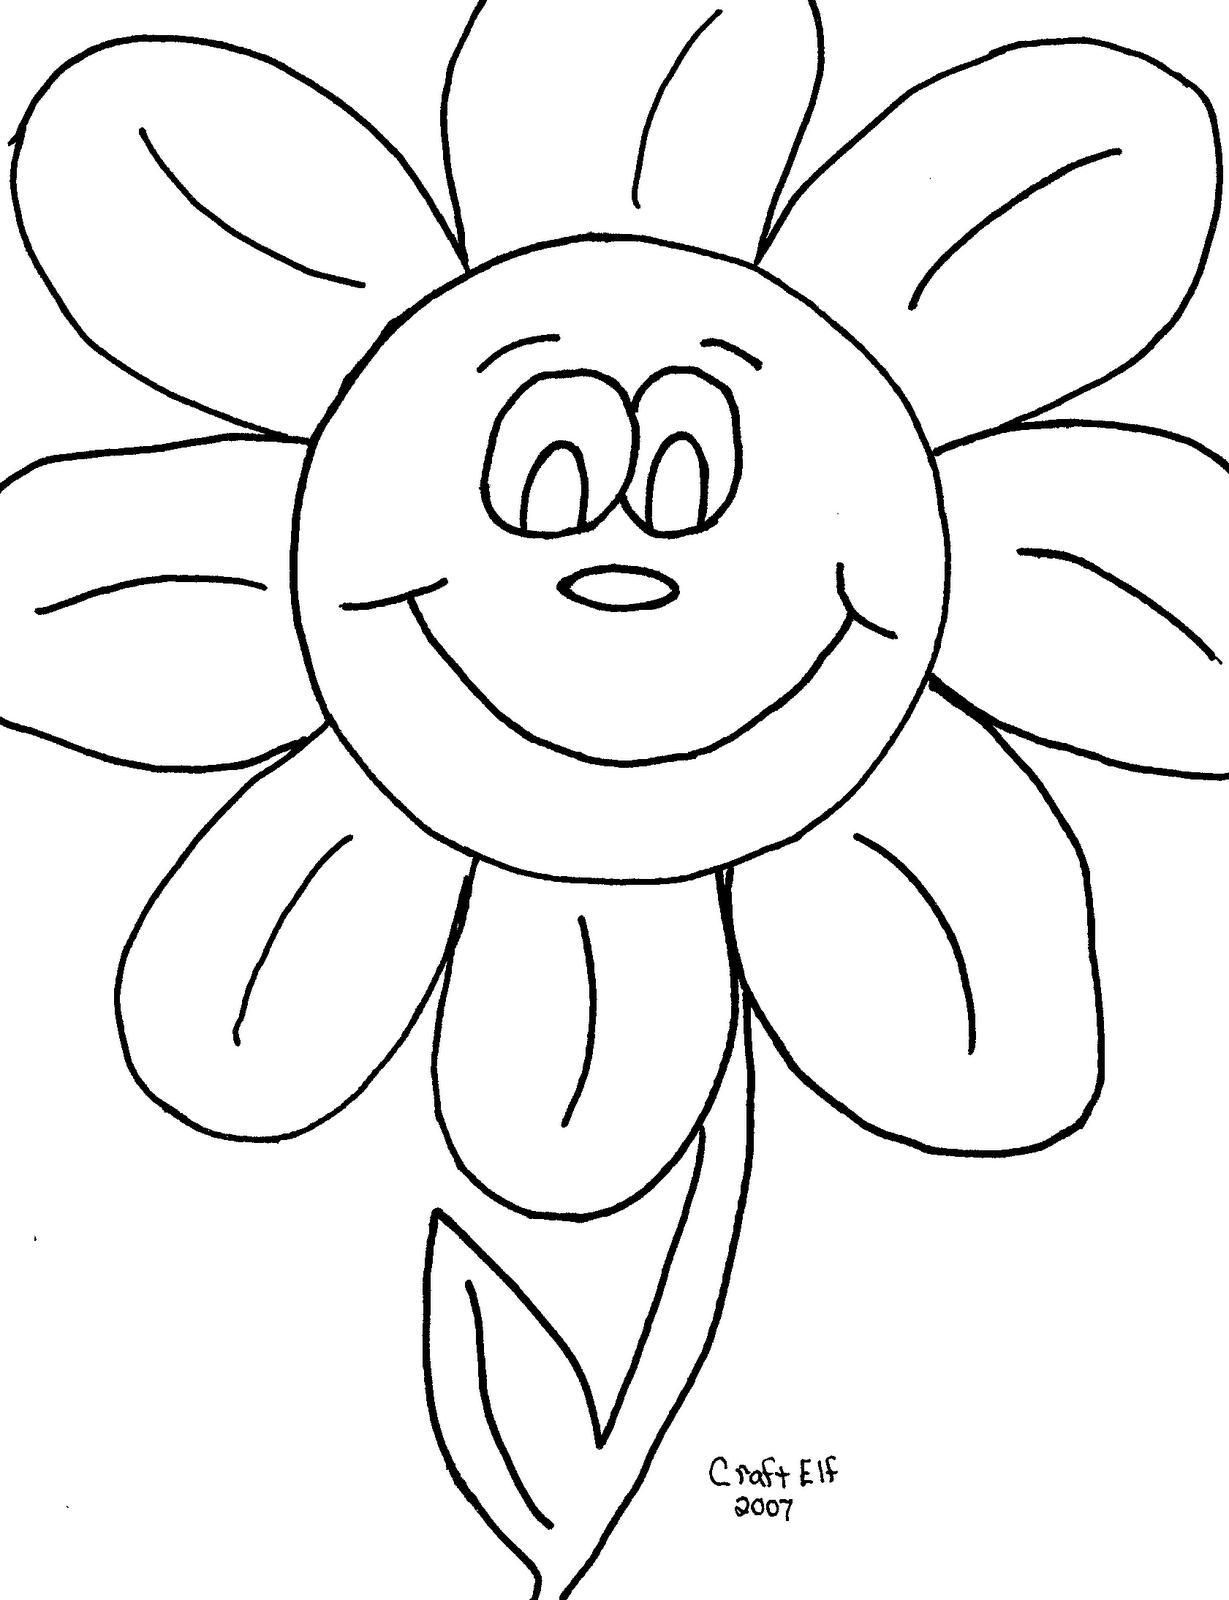 Printable Kindergarten Coloring Sheets